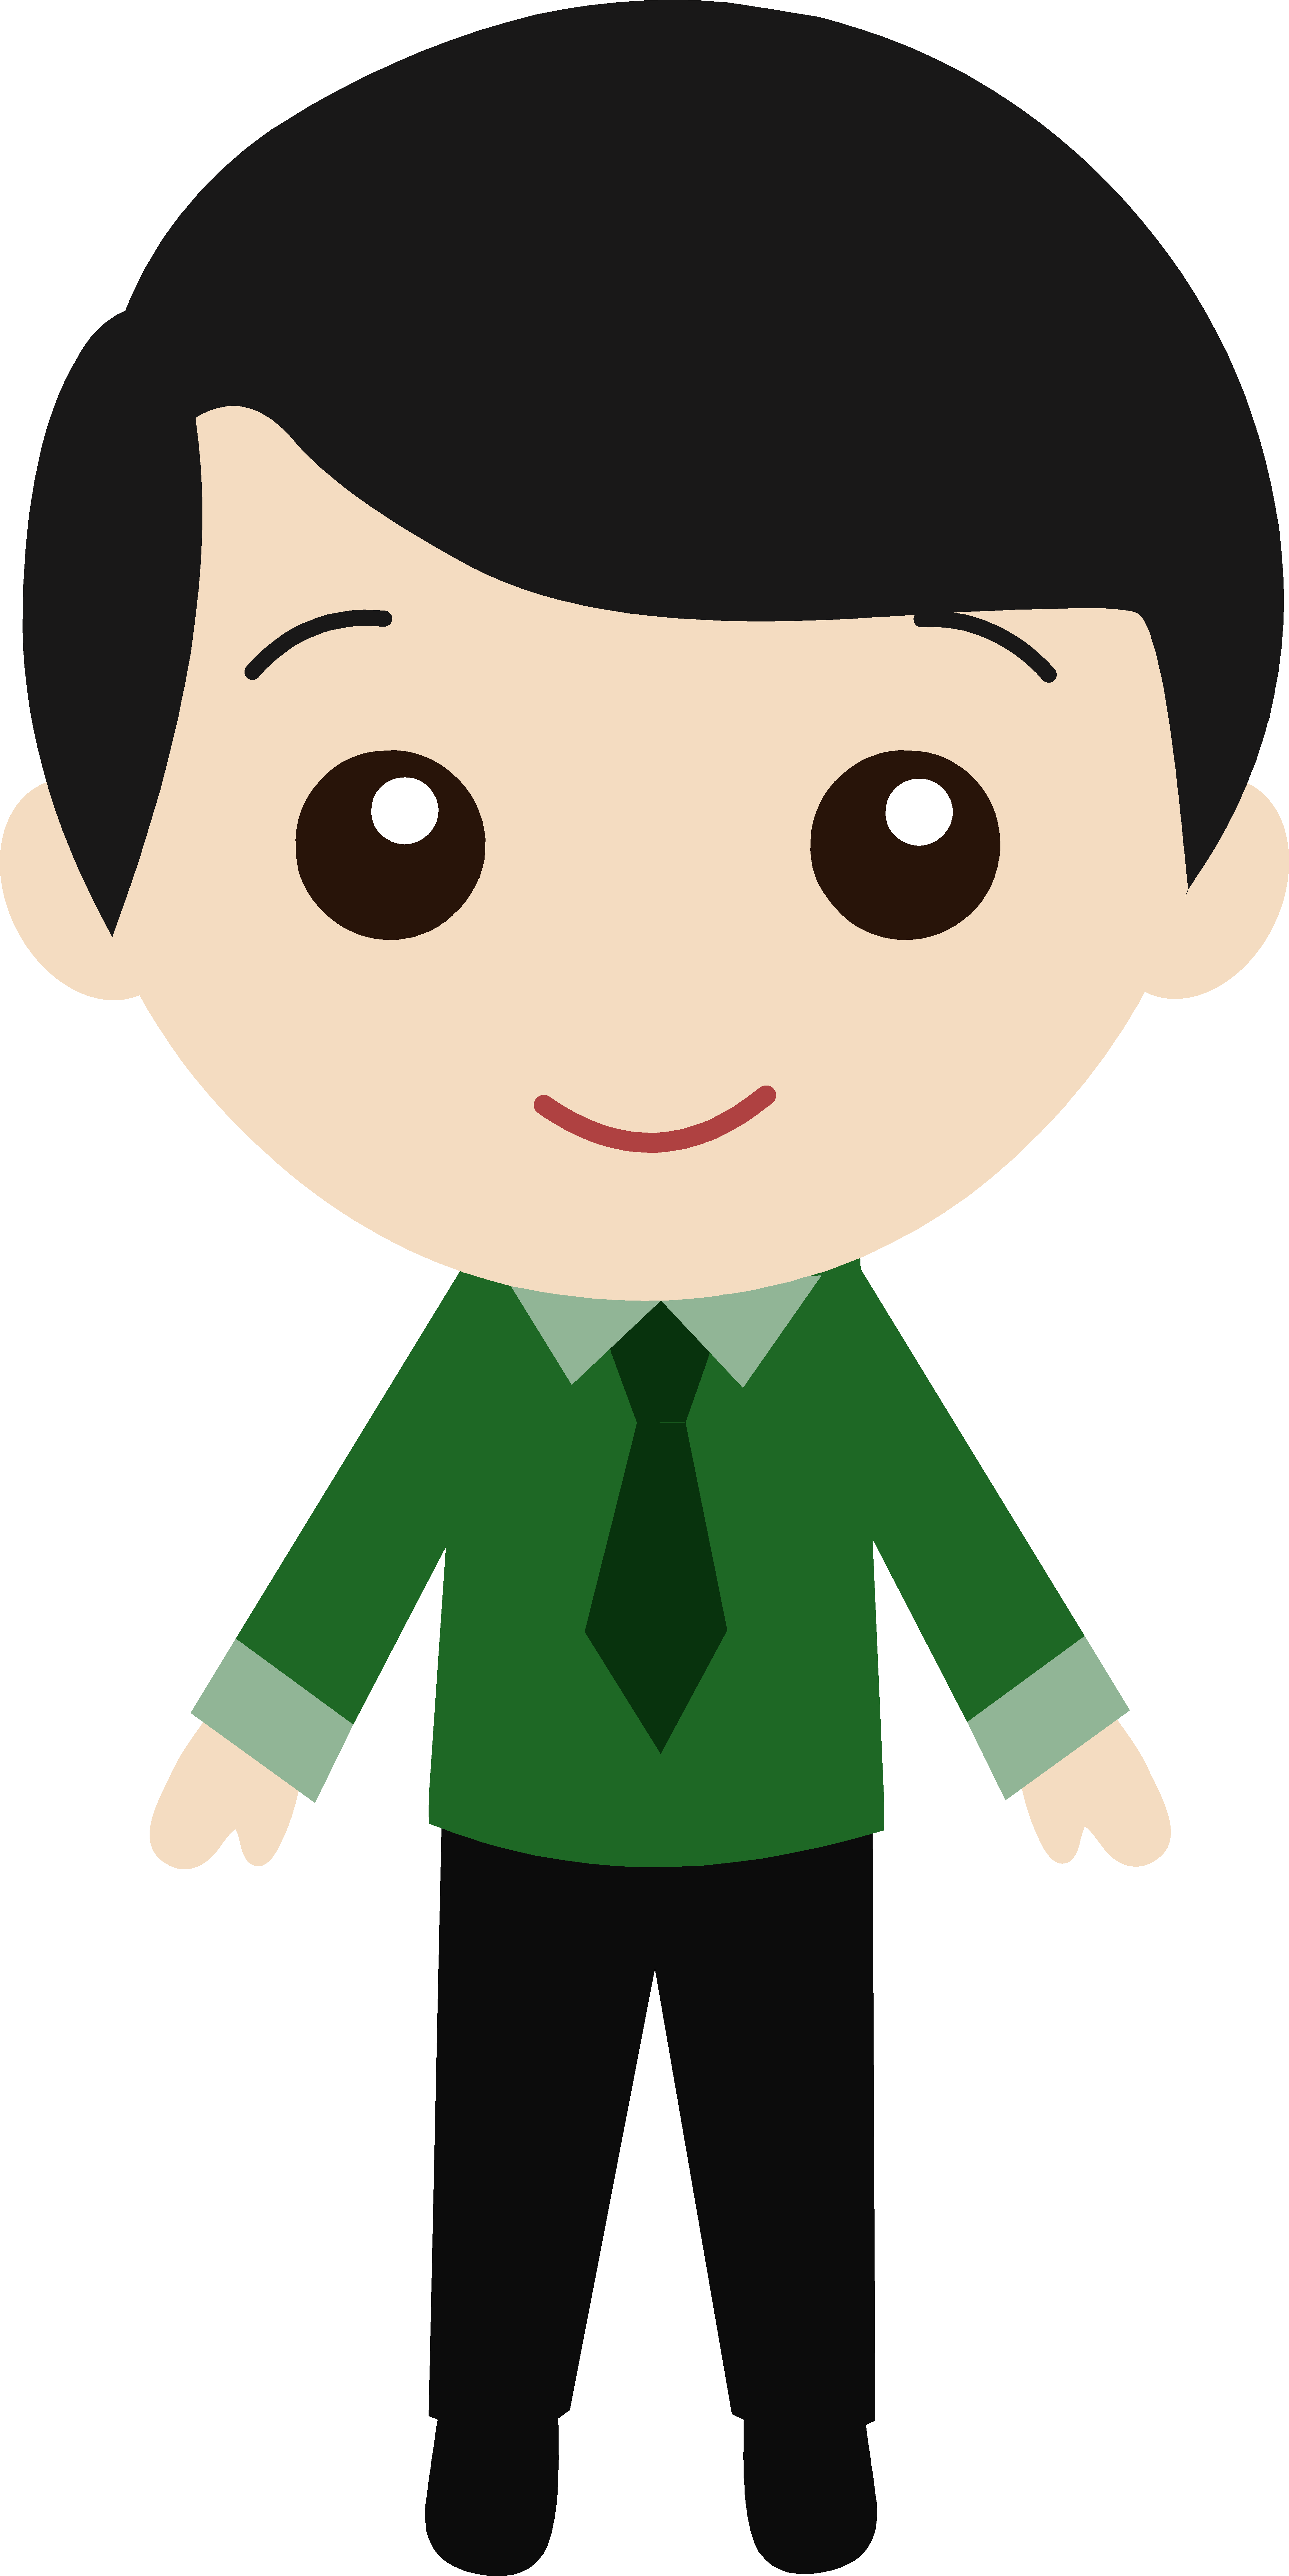 Young clipart brown haired boy. Cute guy